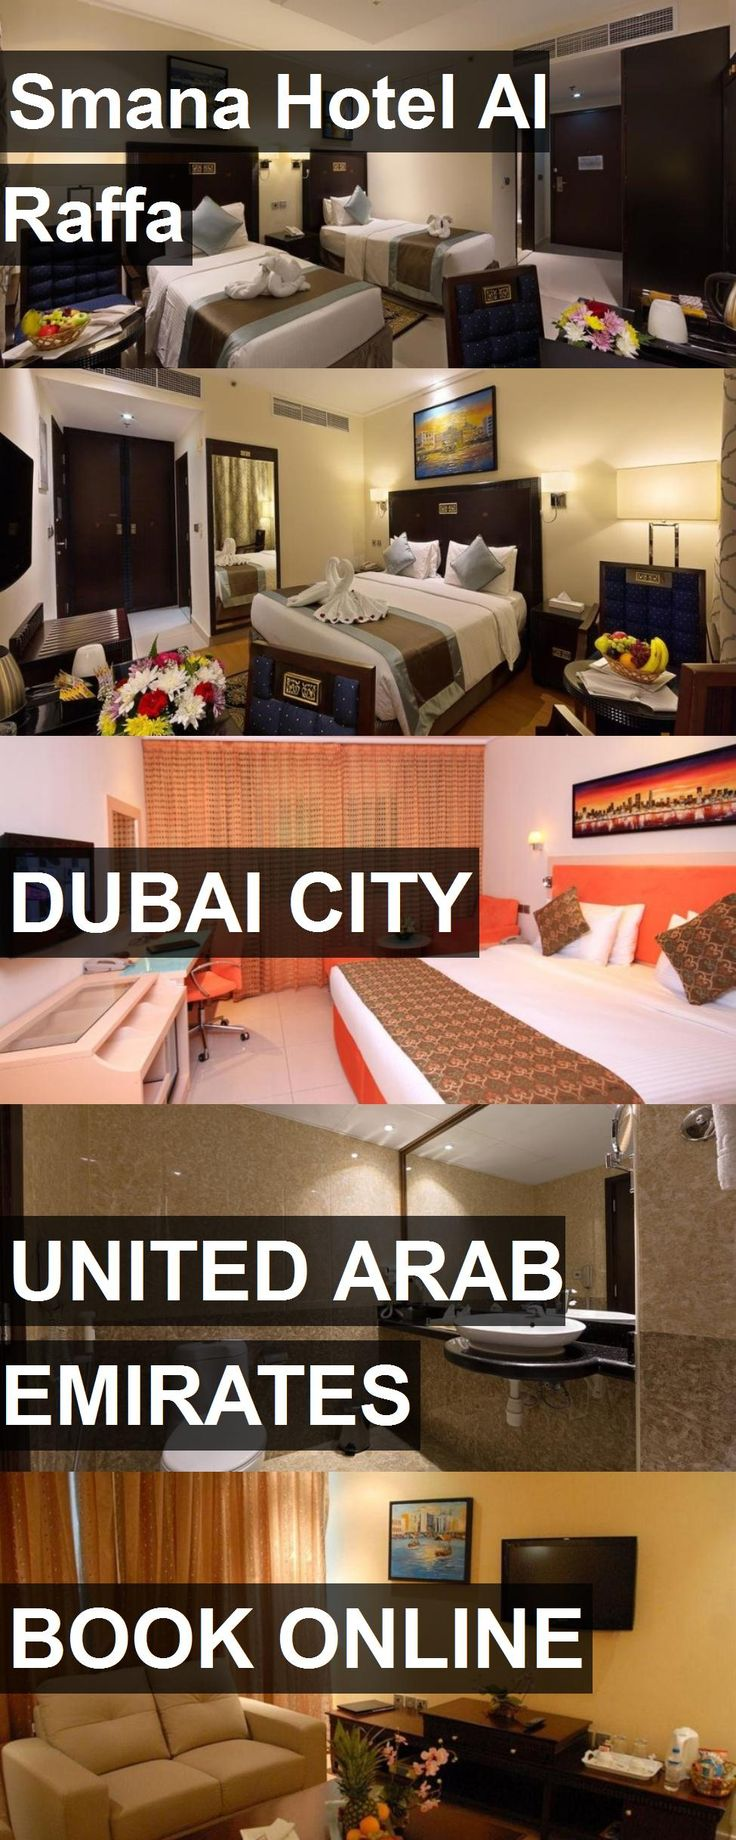 Smana Hotel Al Raffa in Dubai City, United Arab Emirates. For more information, photos, reviews and best prices please follow the link. #UnitedArabEmirates #DubaiCity #travel #vacation #hotel